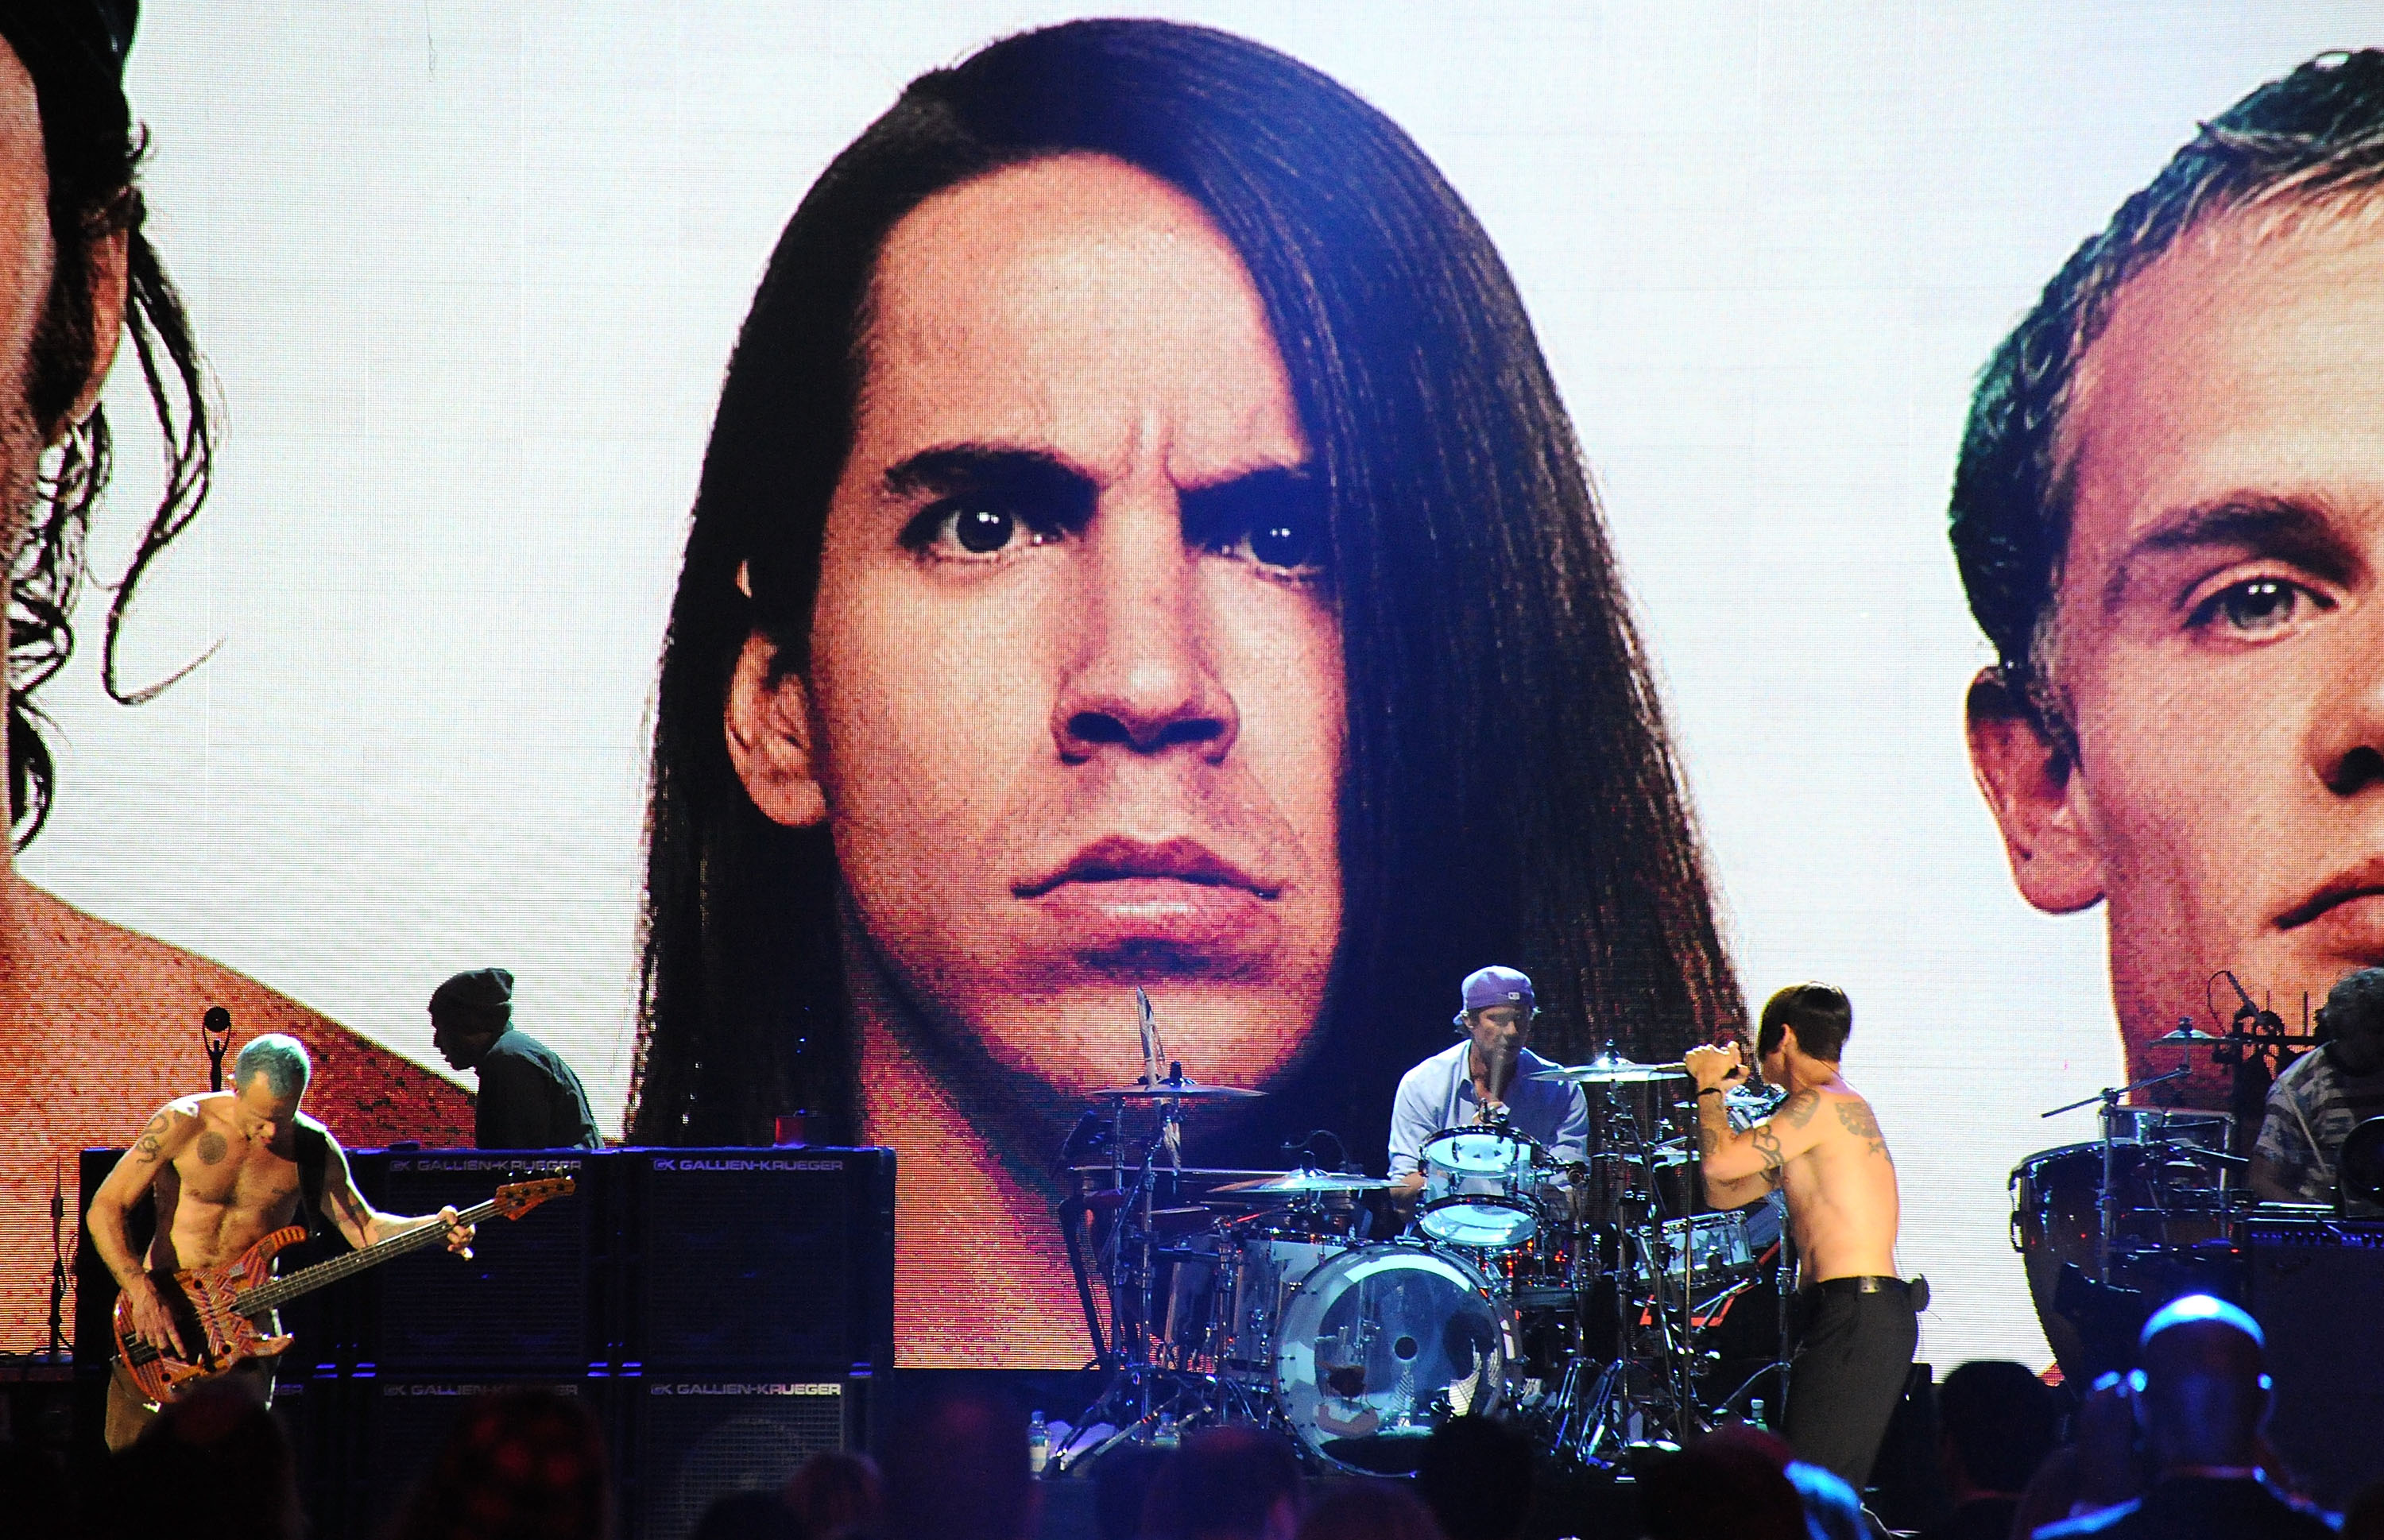 CLEVELAND, OH - APRIL 14: Inductees Red Hot Chili Peppers perform on stage at the 27th Annual Rock And Roll Hall Of Fame Indu